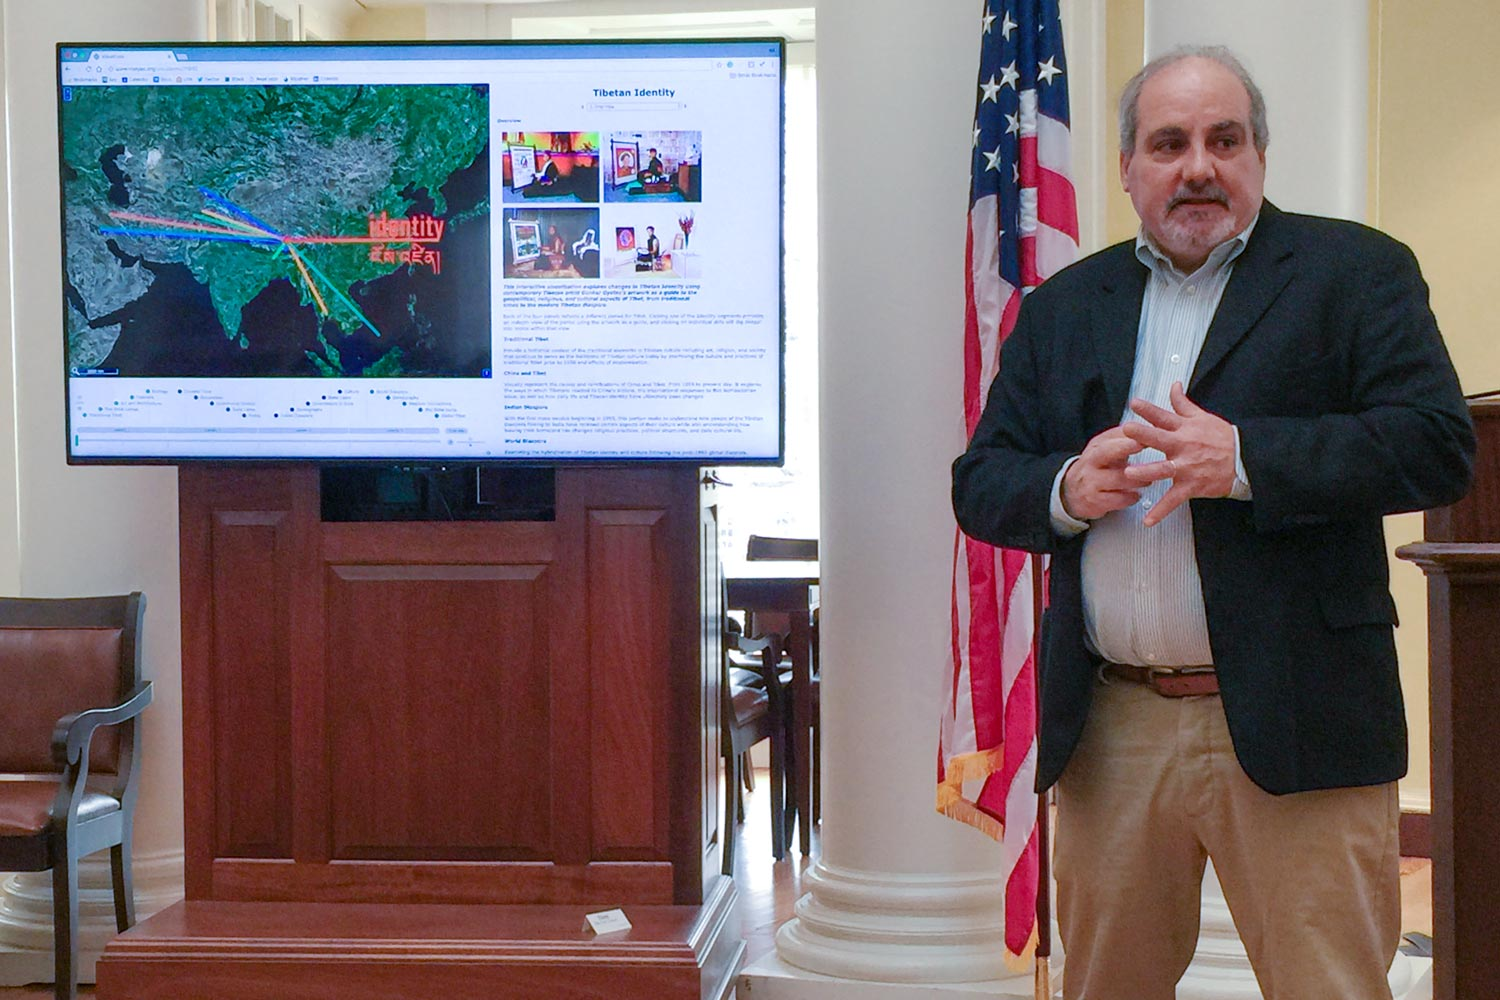 Bill Ferster introduces students' digital projects on the final class day of the semester in the Rotunda Dome Room. (Photo by Susan Ferster)